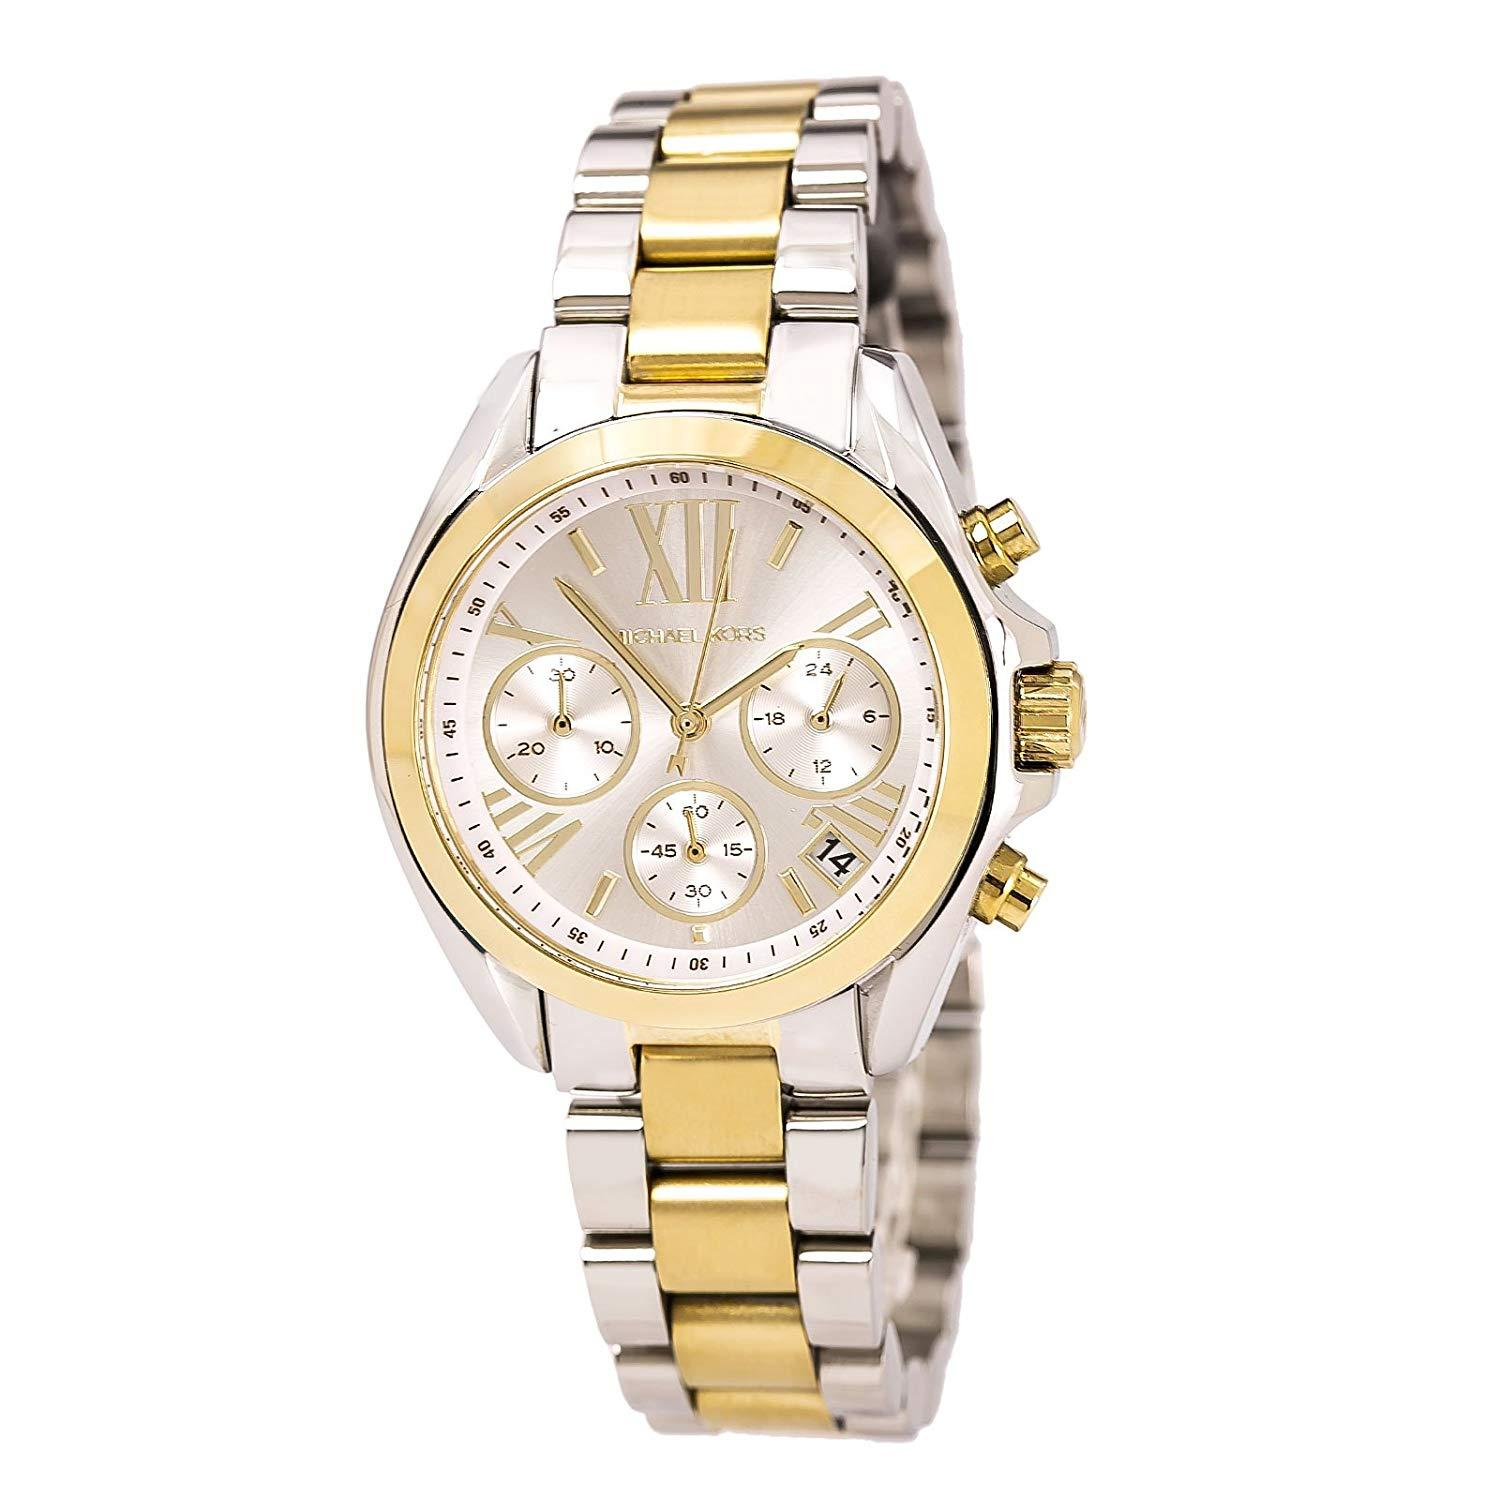 c5c5e60c7e73 MK Michael Kors Mini Bradshaw MK5974 Two-Tone (White Gold) Stainless Steel